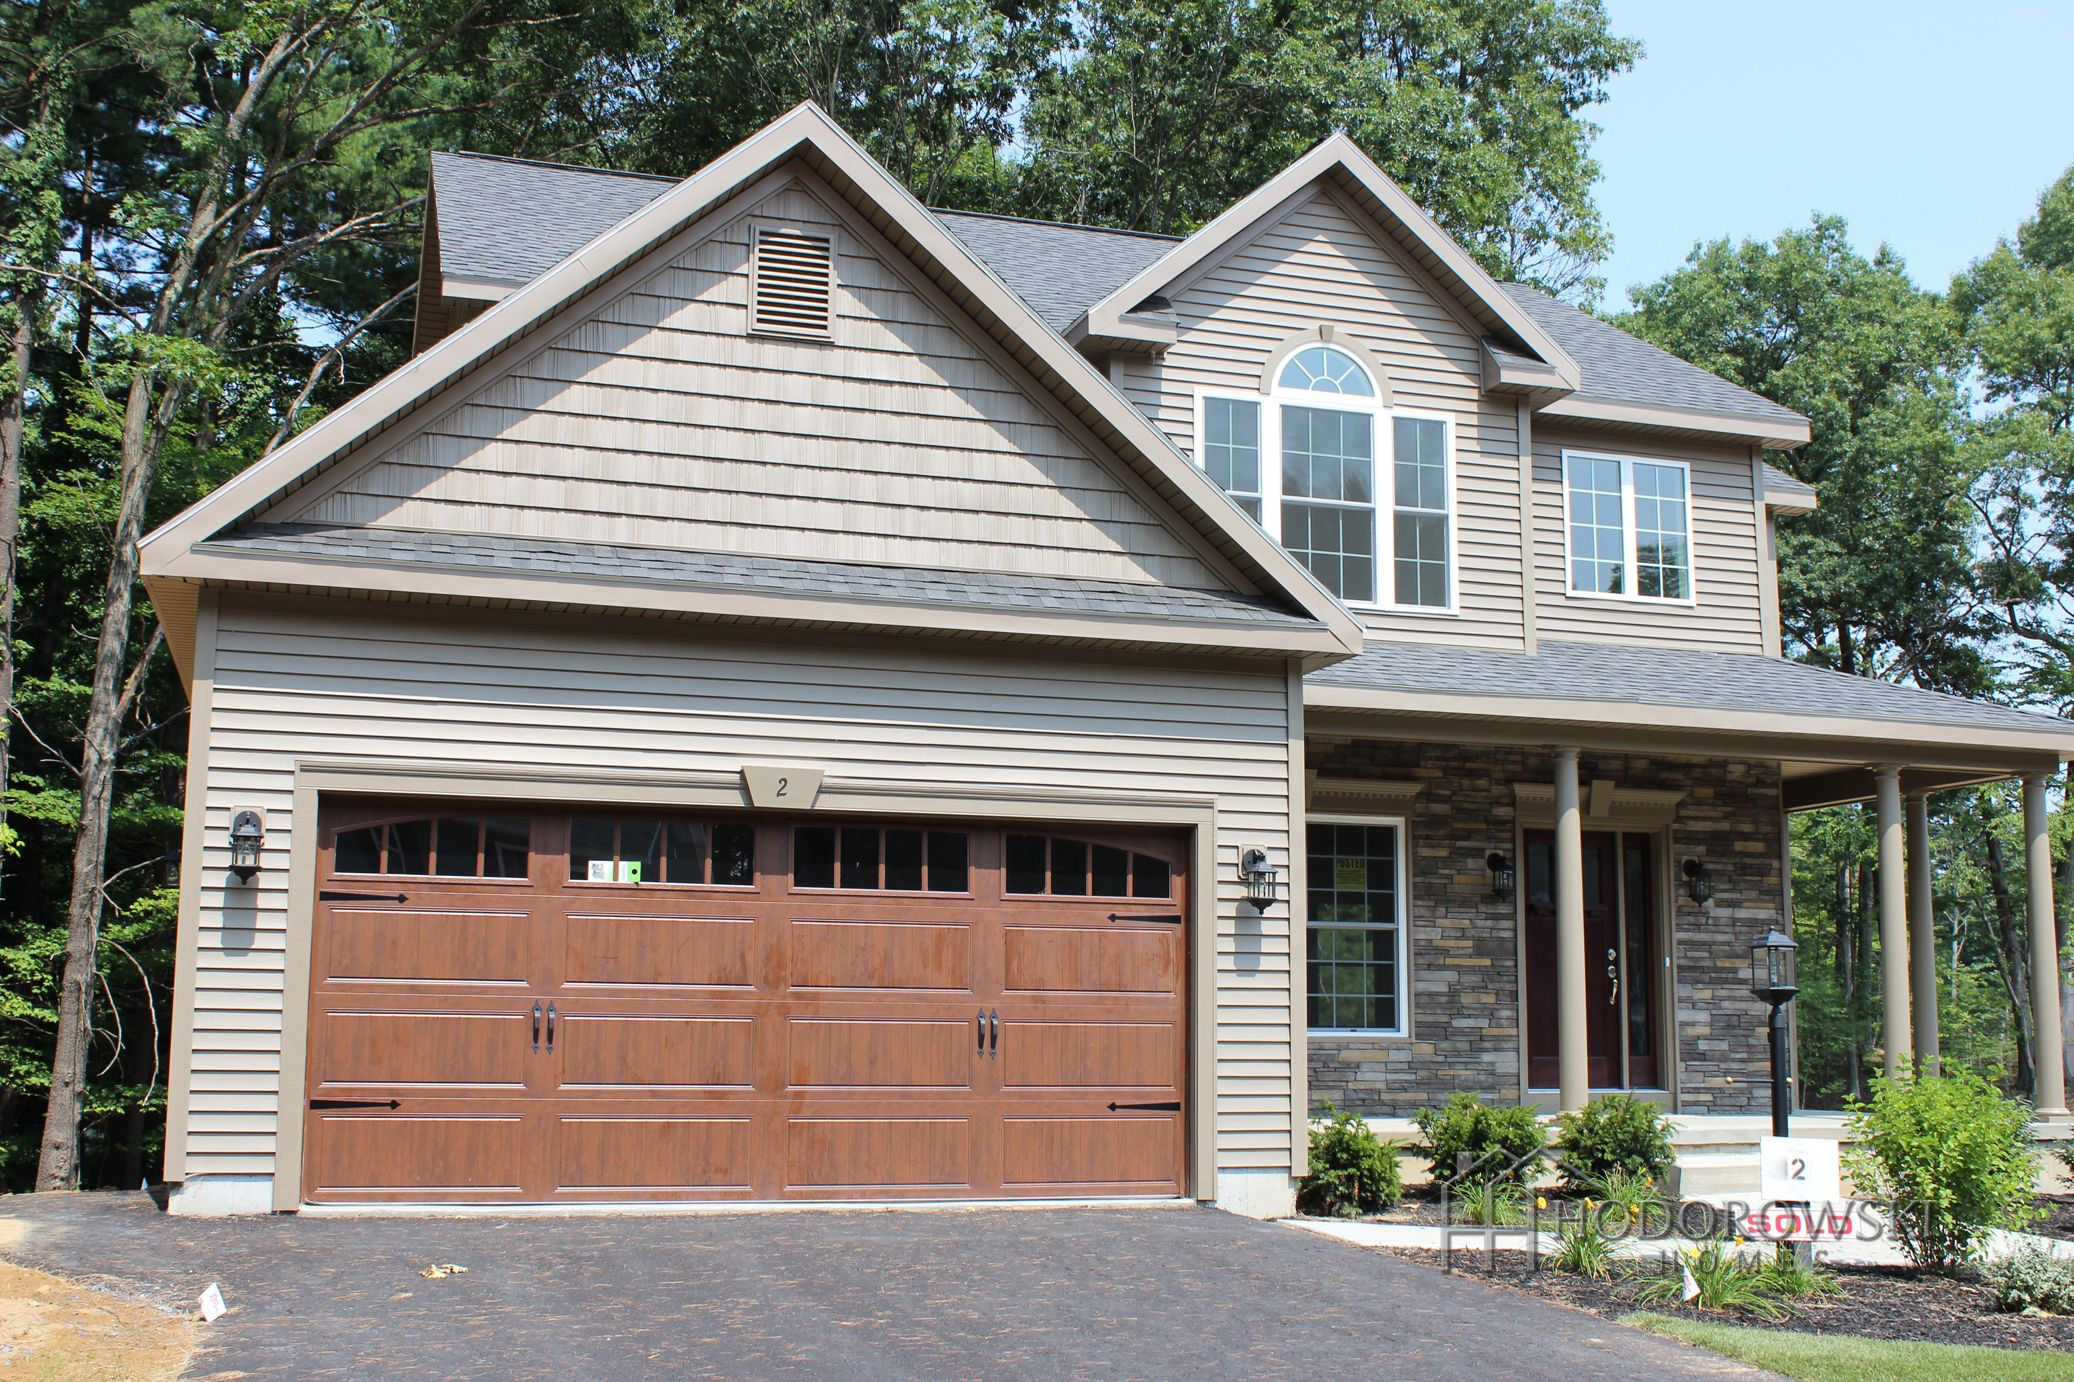 This Impressive Helmond A Model Selected Java Siding With A Wood Grain Style Mahogany Stained Door And Garag Exterior House Colors House Exterior House Colors